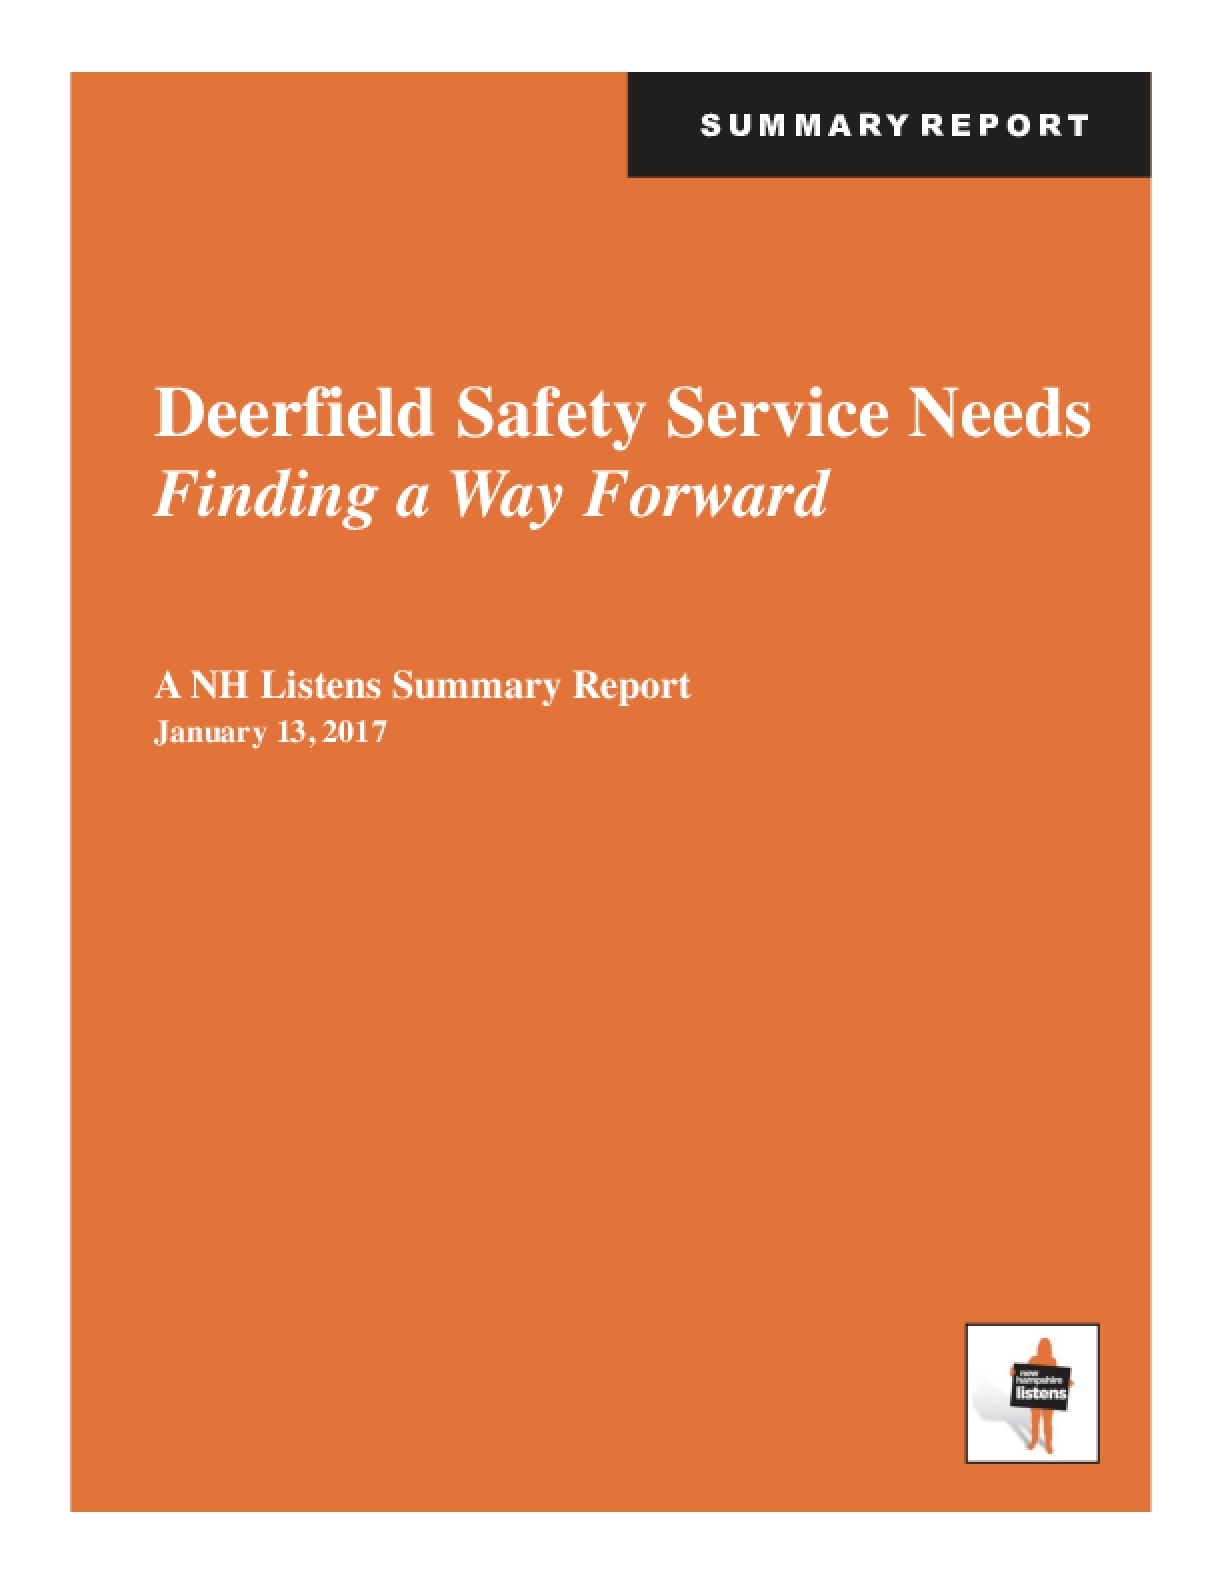 Deerfield Safety Service Needs Finding a Way Forward